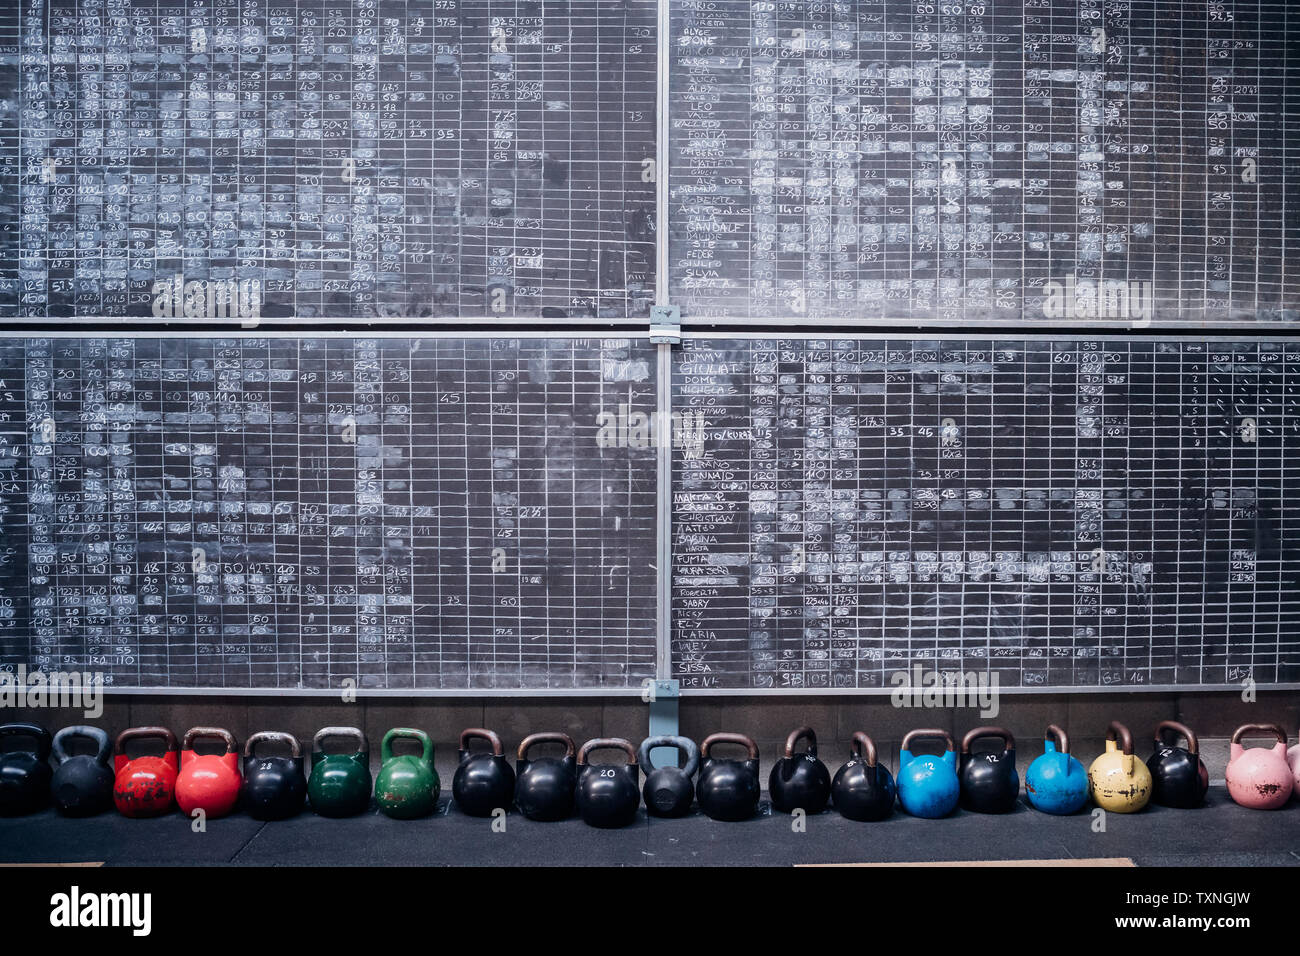 Scoreboards and kettlebells in gym - Stock Image